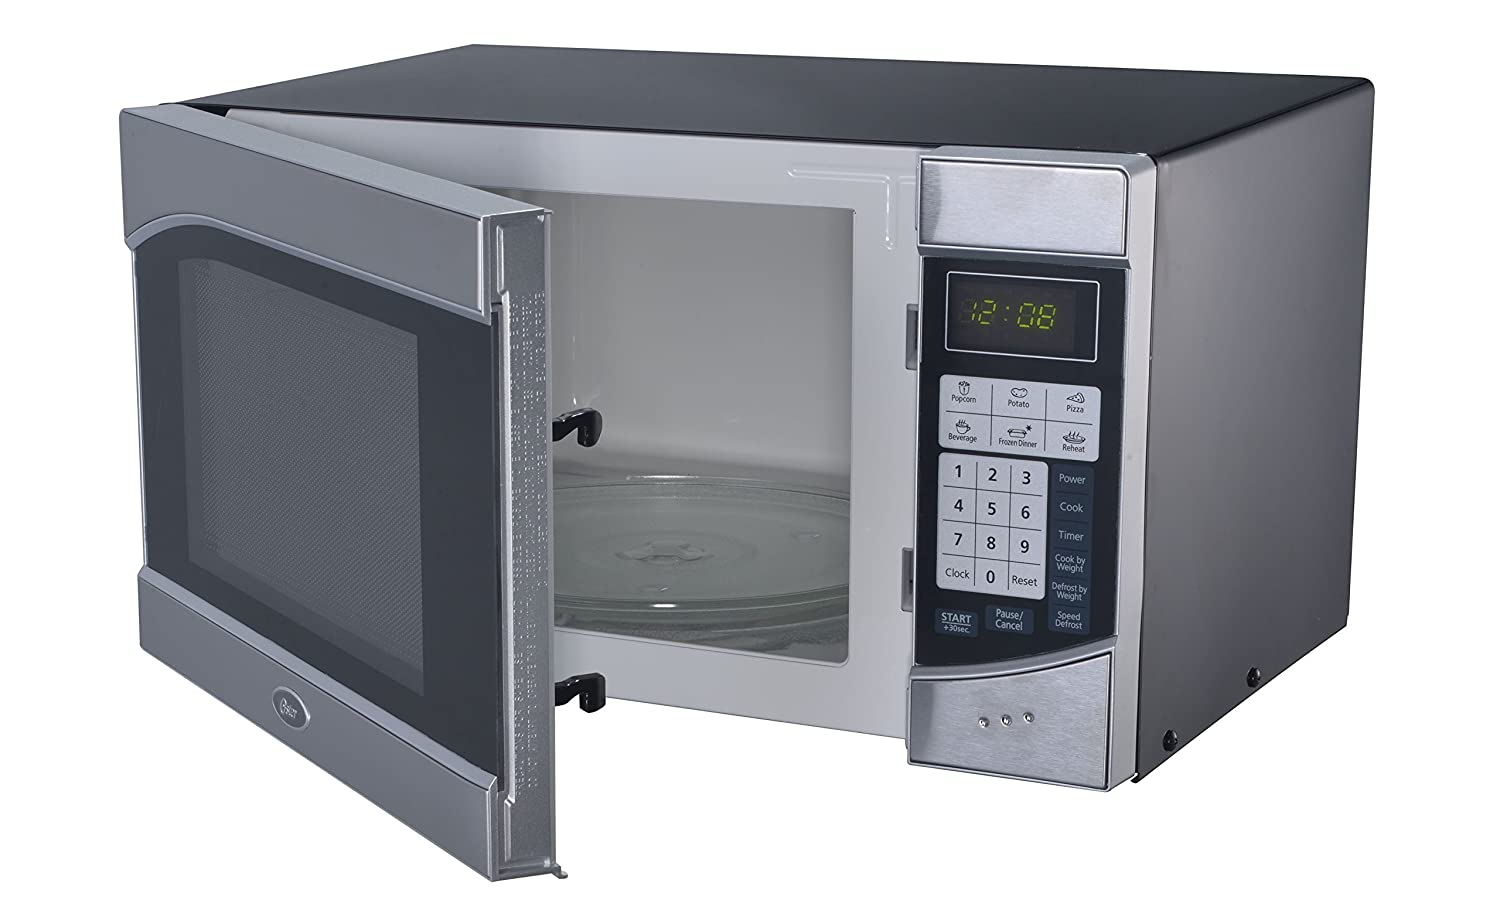 Countertop Microwave Oven Reviews 2017 : 10 Best Countertop Microwave Ovens - Top Countertop Oven Reviews